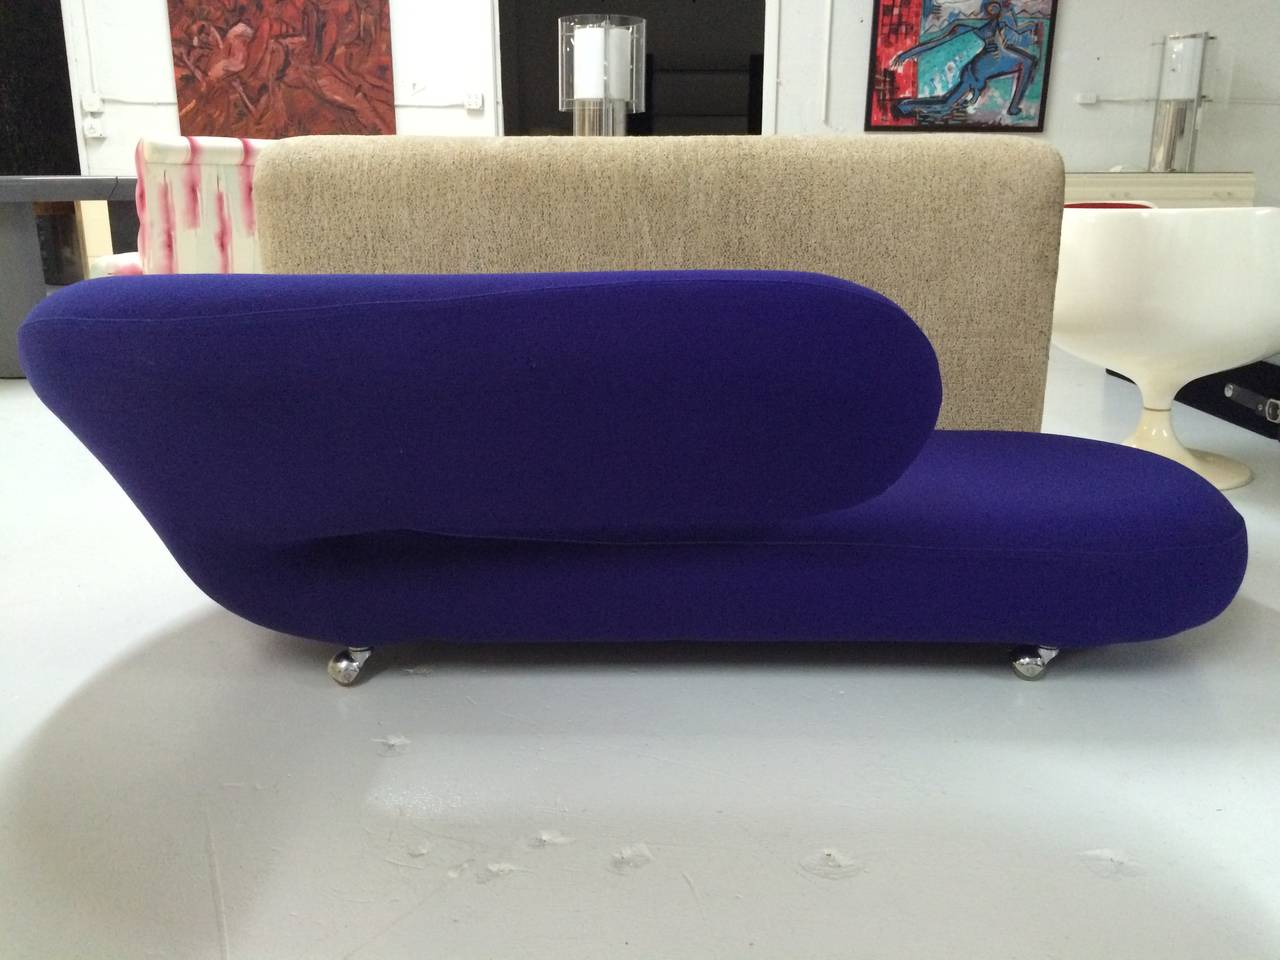 Geoffrey harcourt cleopatra chaise lounge for artifort for Artifort chaise lounge